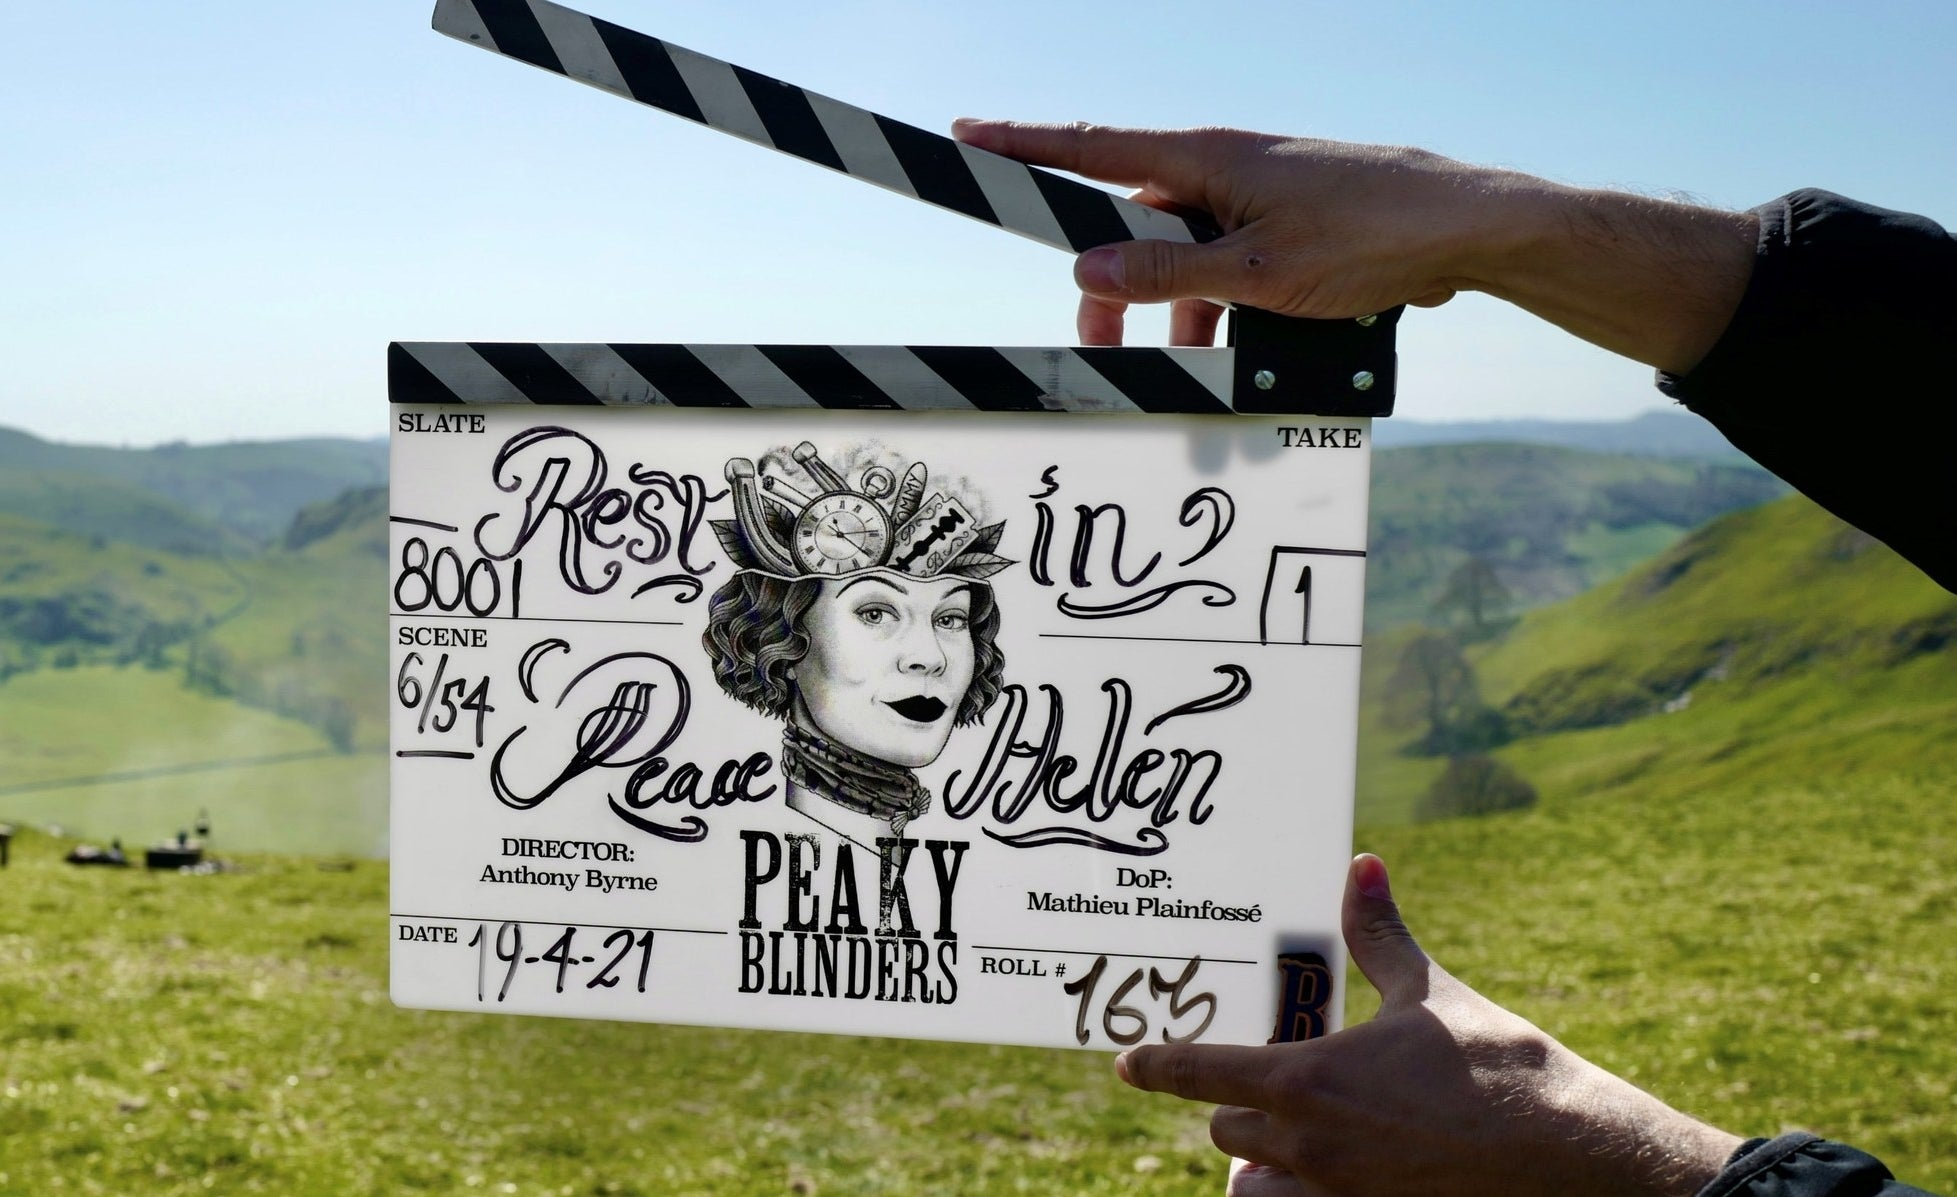 The clapboard features a pocketwatch